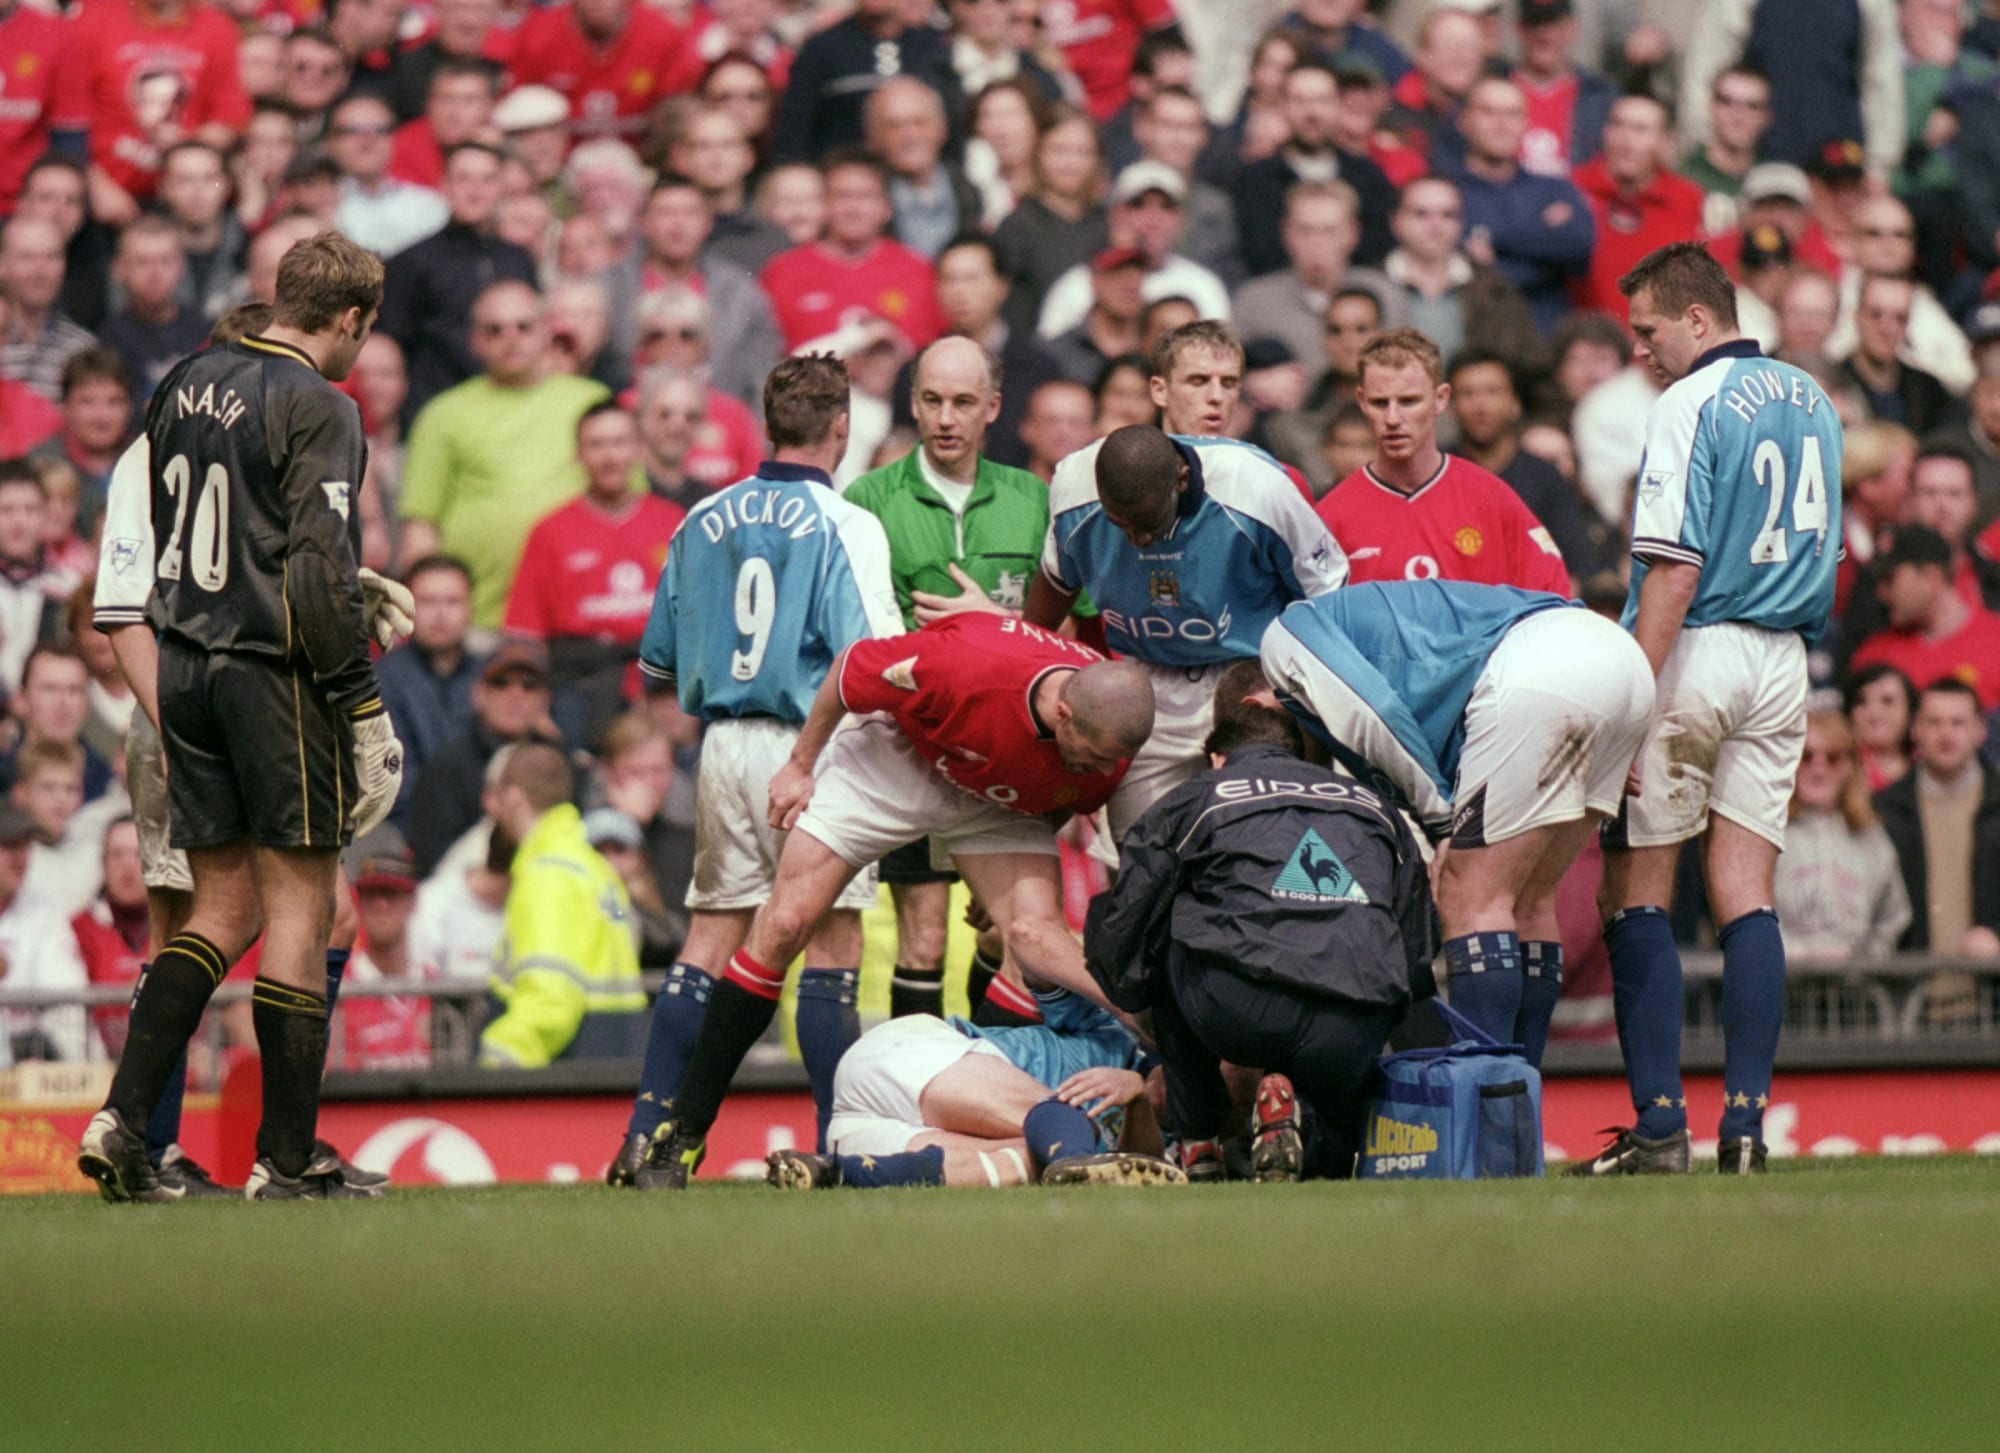 Manchester United Vs Leeds United Rivalry Blast From The Past